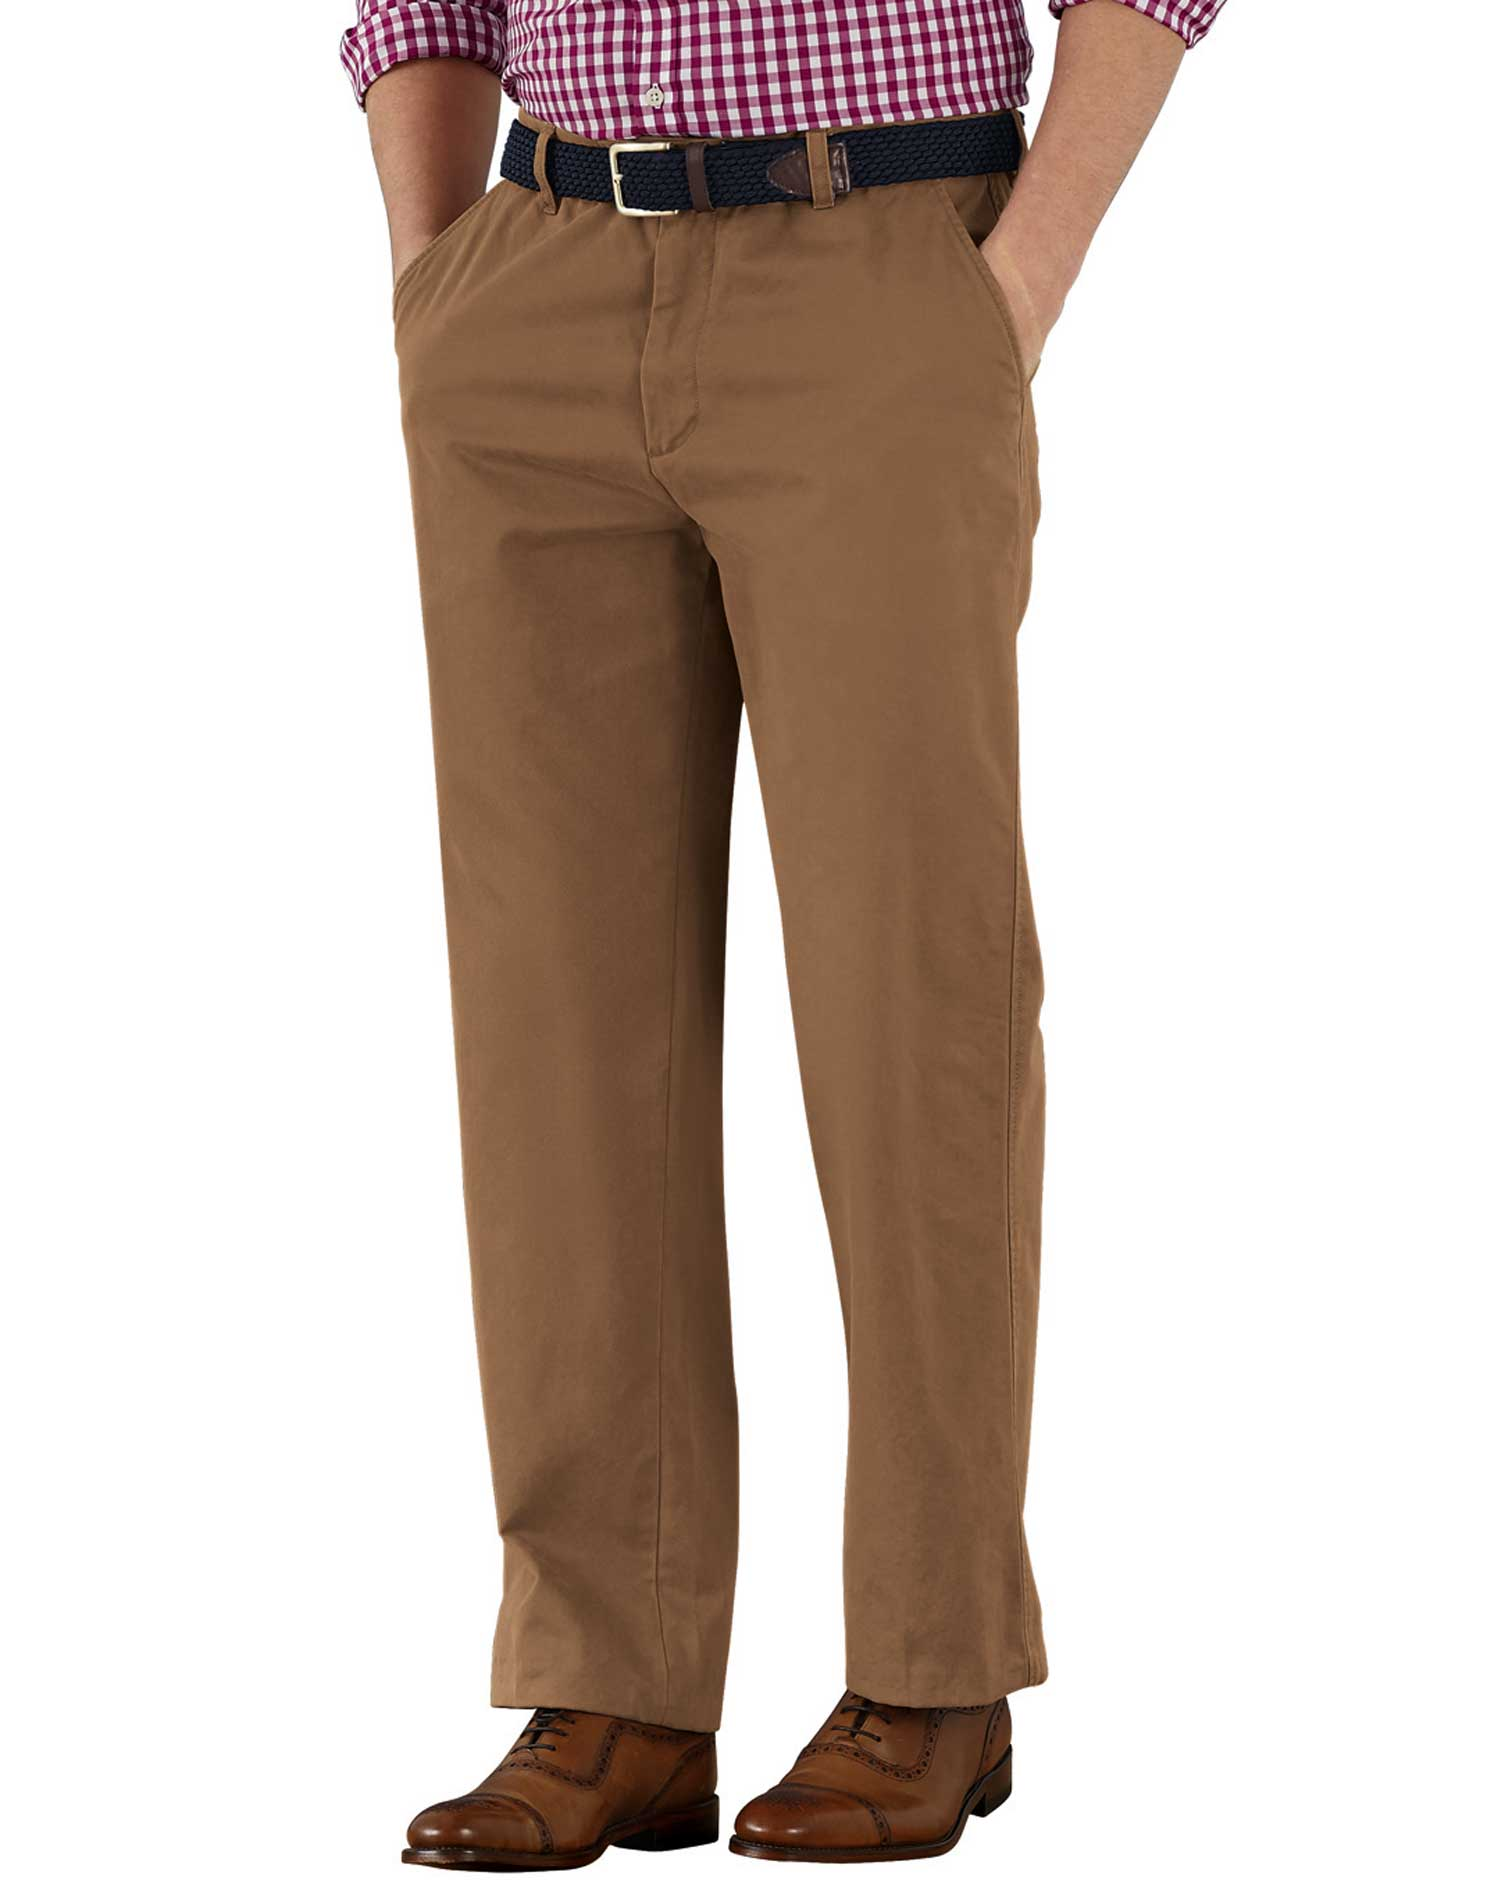 Camel Classic Fit Flat Front Cotton Chino Trousers Size W34 L38 by Charles Tyrwhitt